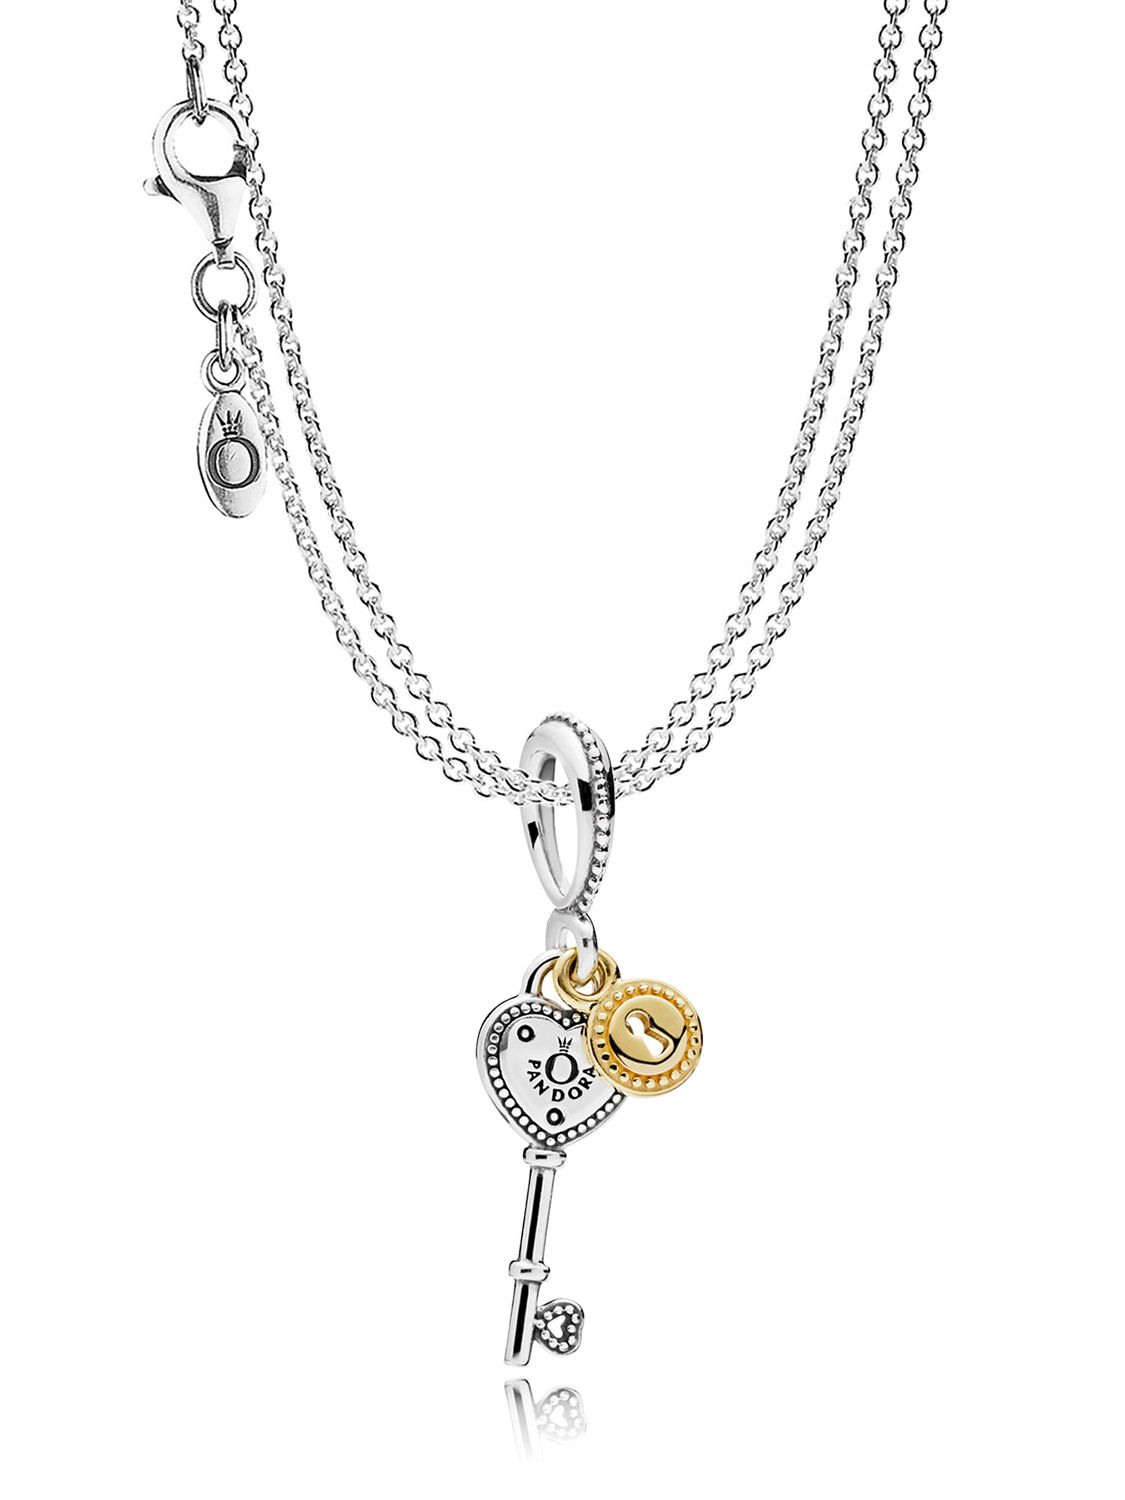 Pandora 08393 Necklace Key To My Heart Pendant For Newest Pandora Lockets Heart Key Necklaces (View 7 of 25)